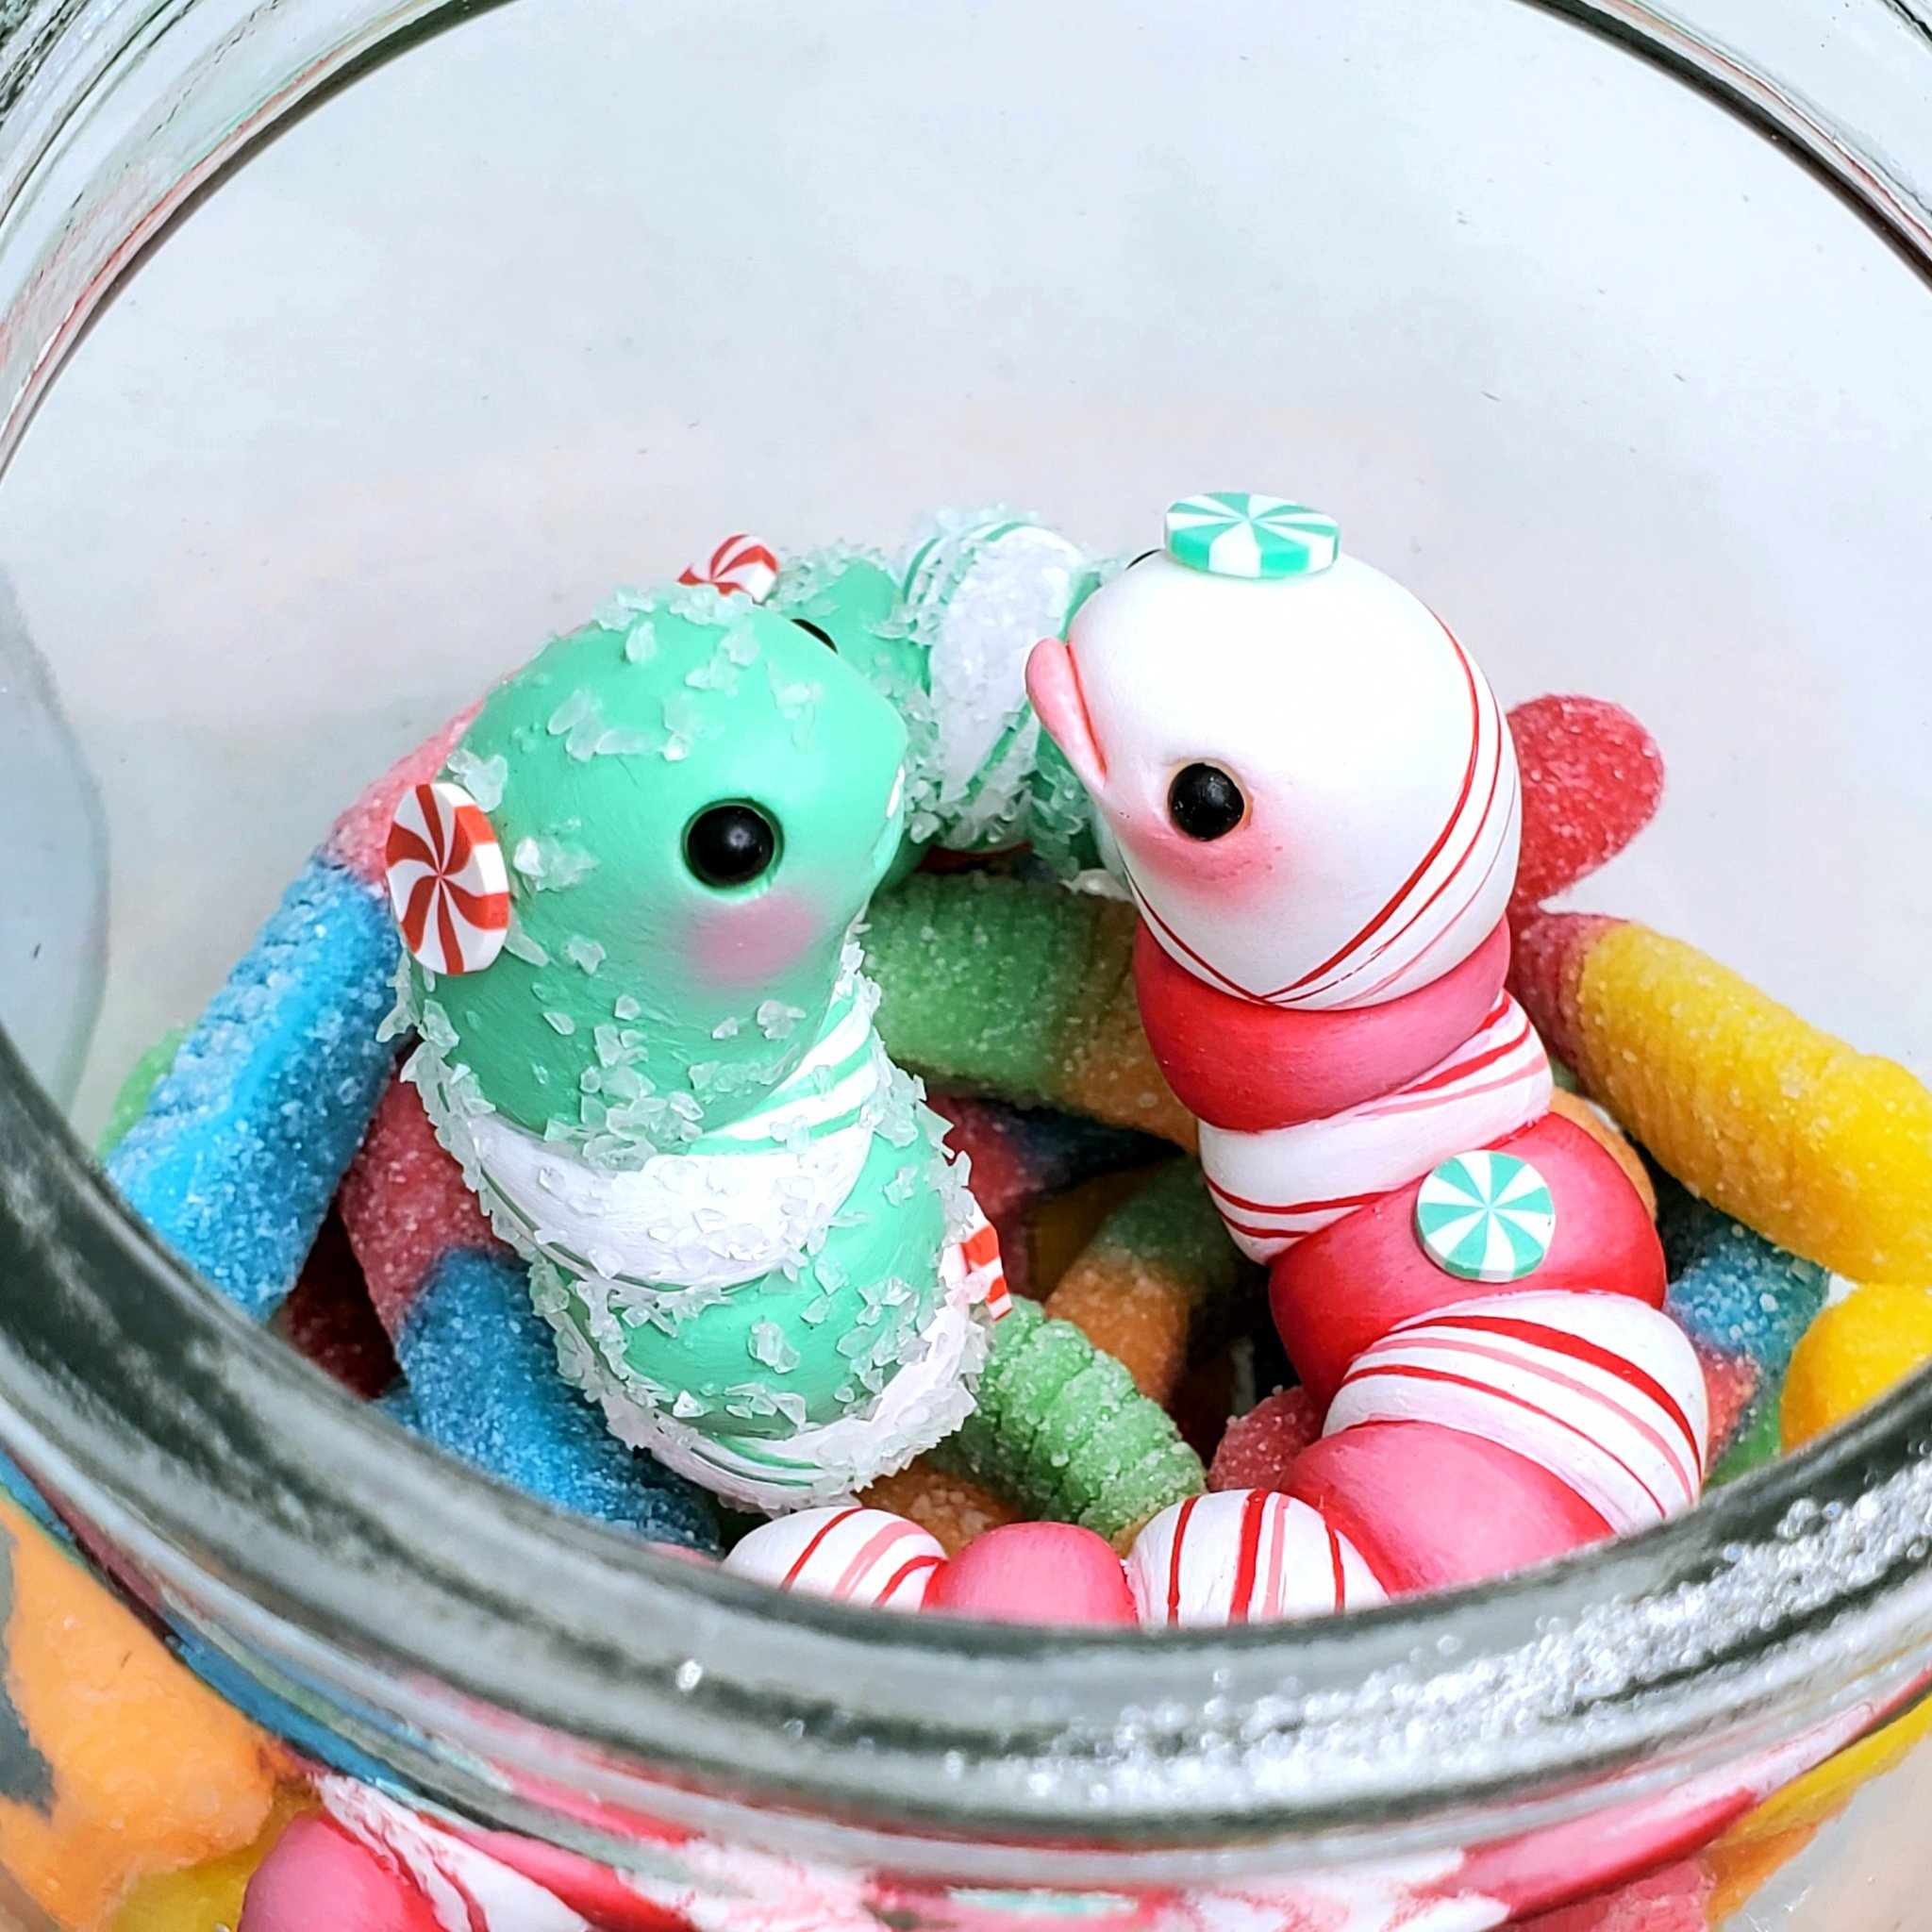 SeriouslySillyK Minty Fresh Edition Holiday Gummy Worms Pair In Candy Jar Promo Photo